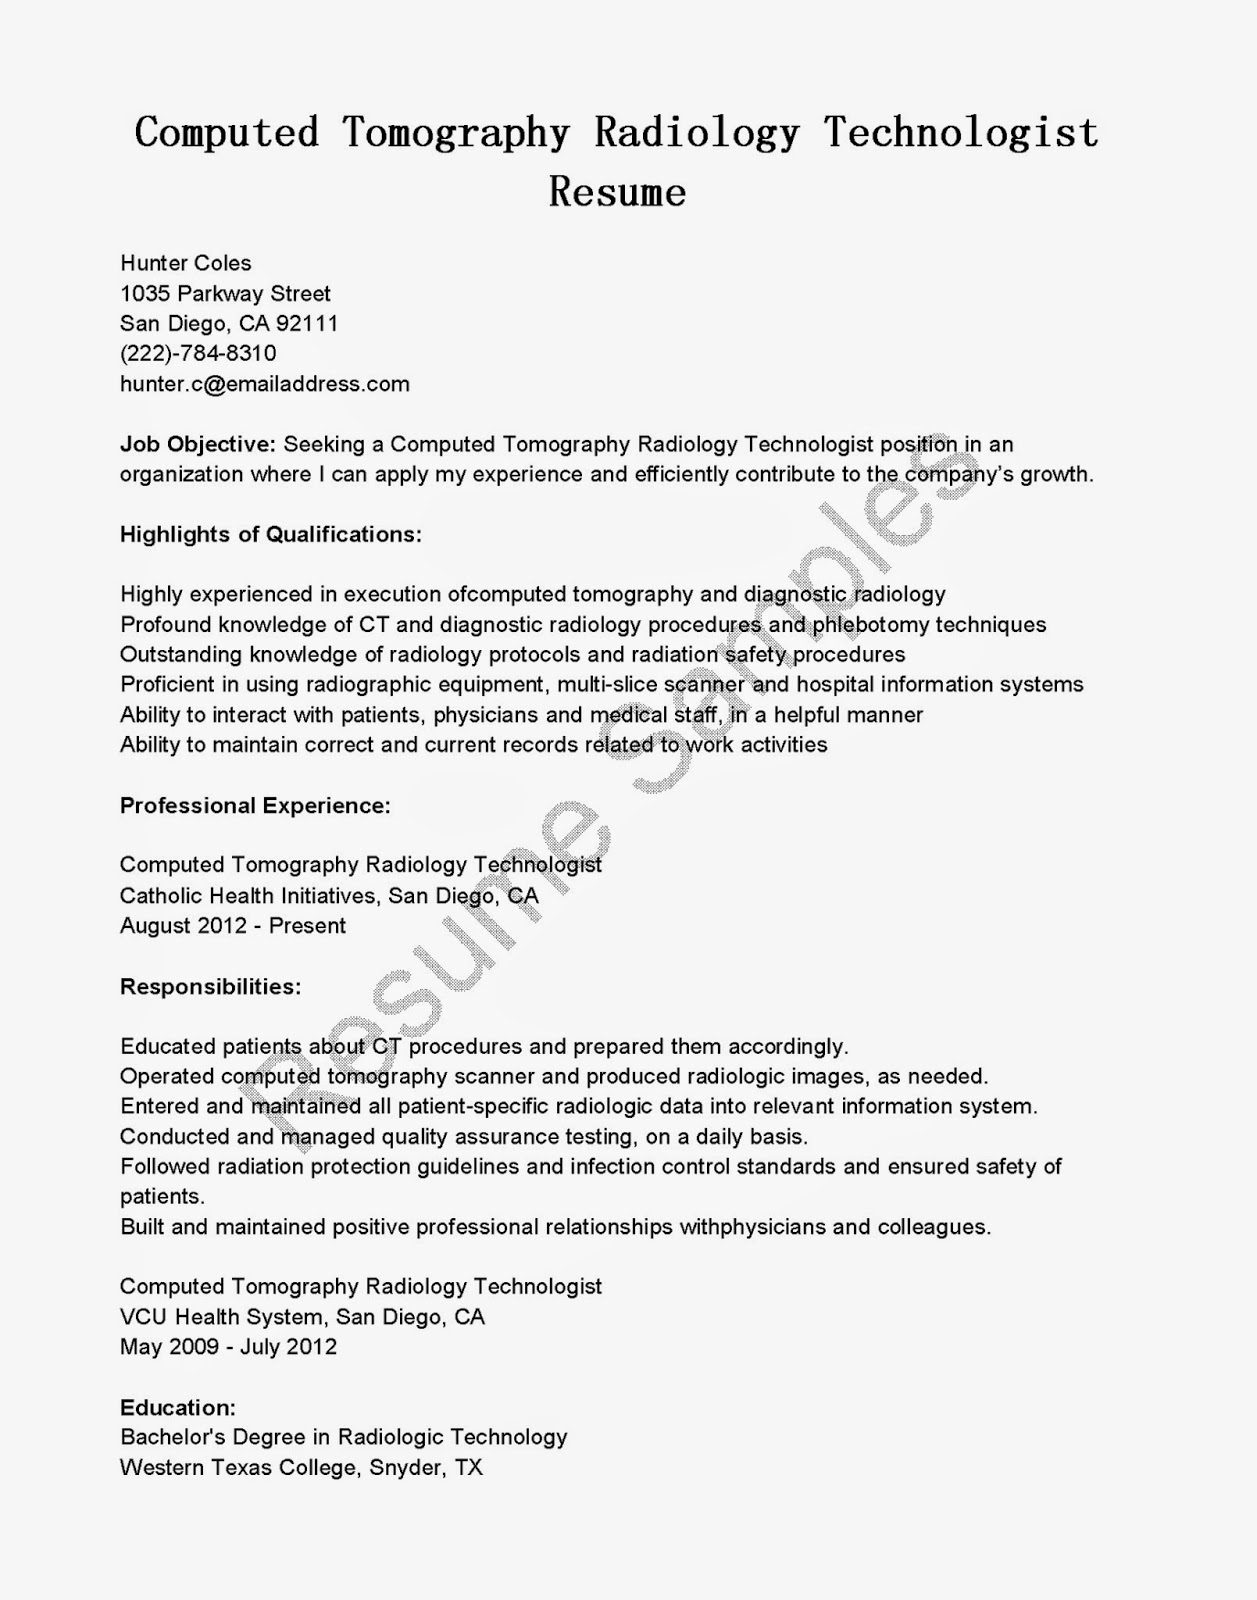 Radiologic Technologist Sample Resume 22.06.2017